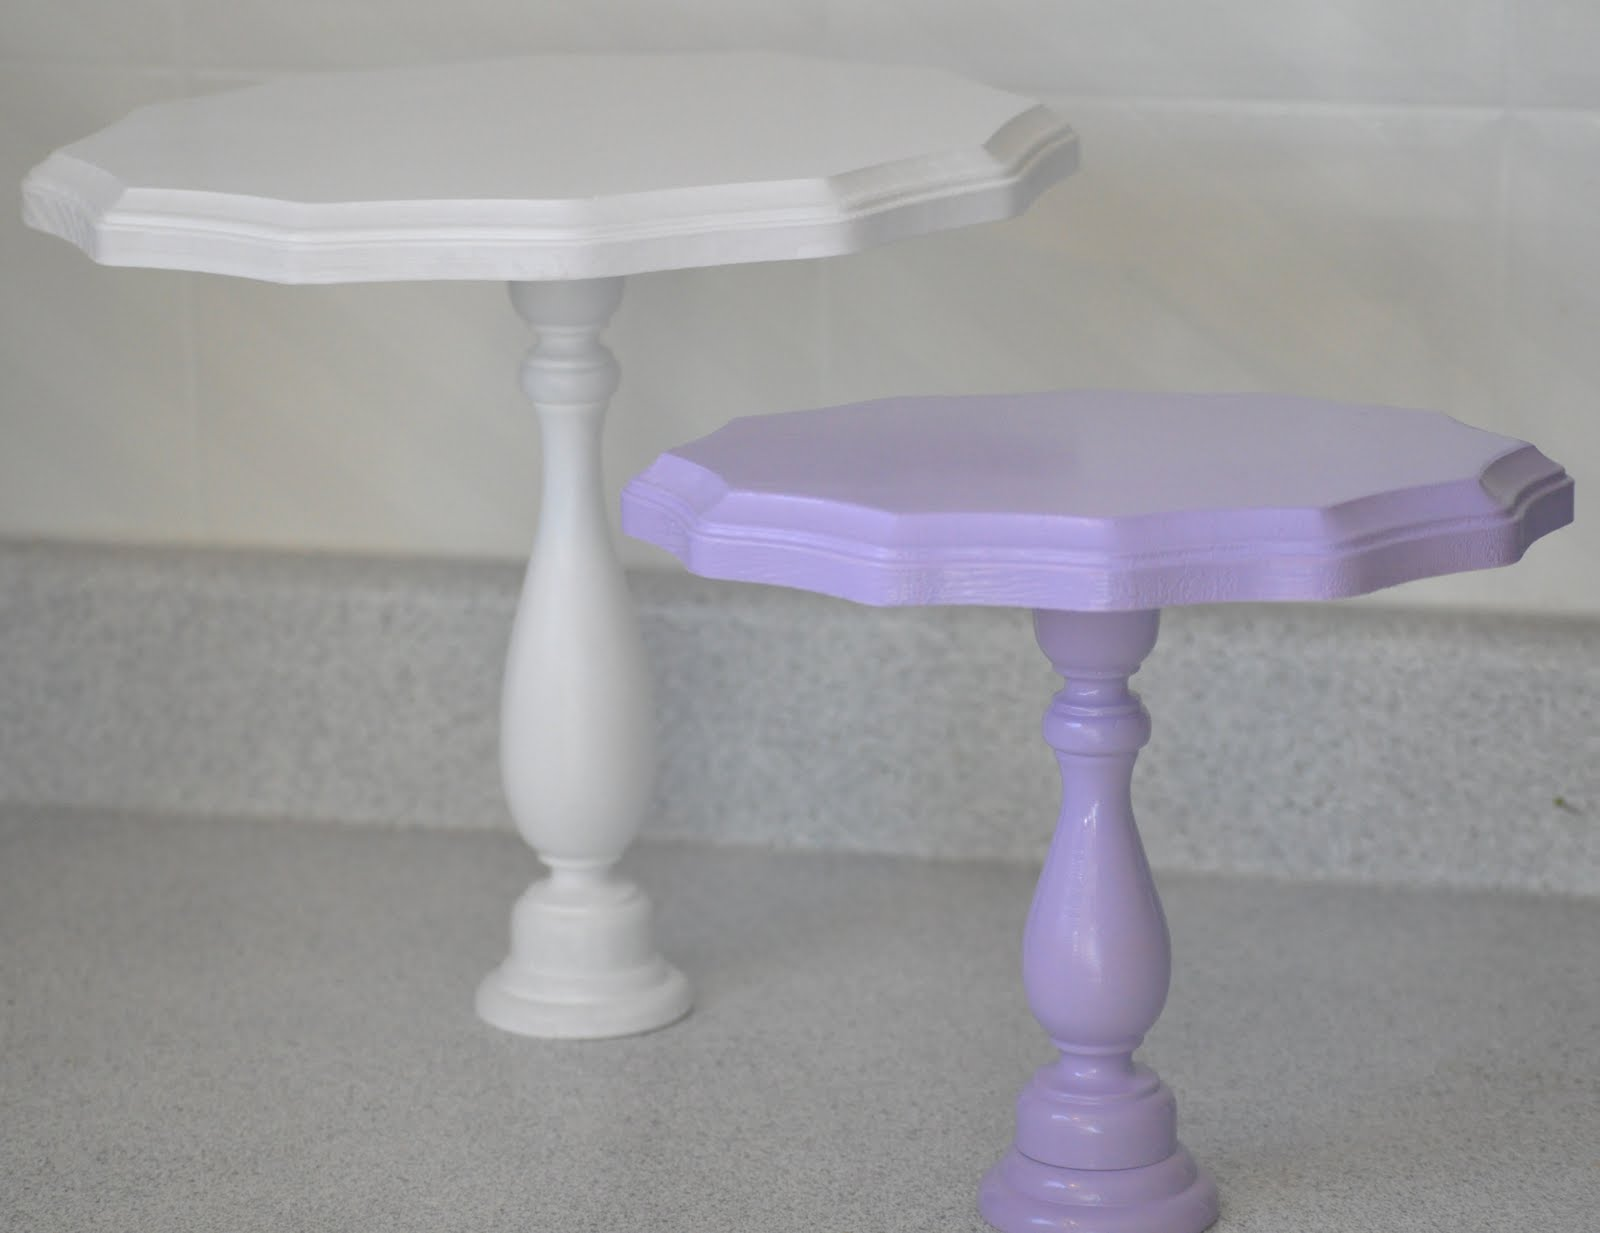 Modern Country Designs: DIY - Wooden Cake Stands